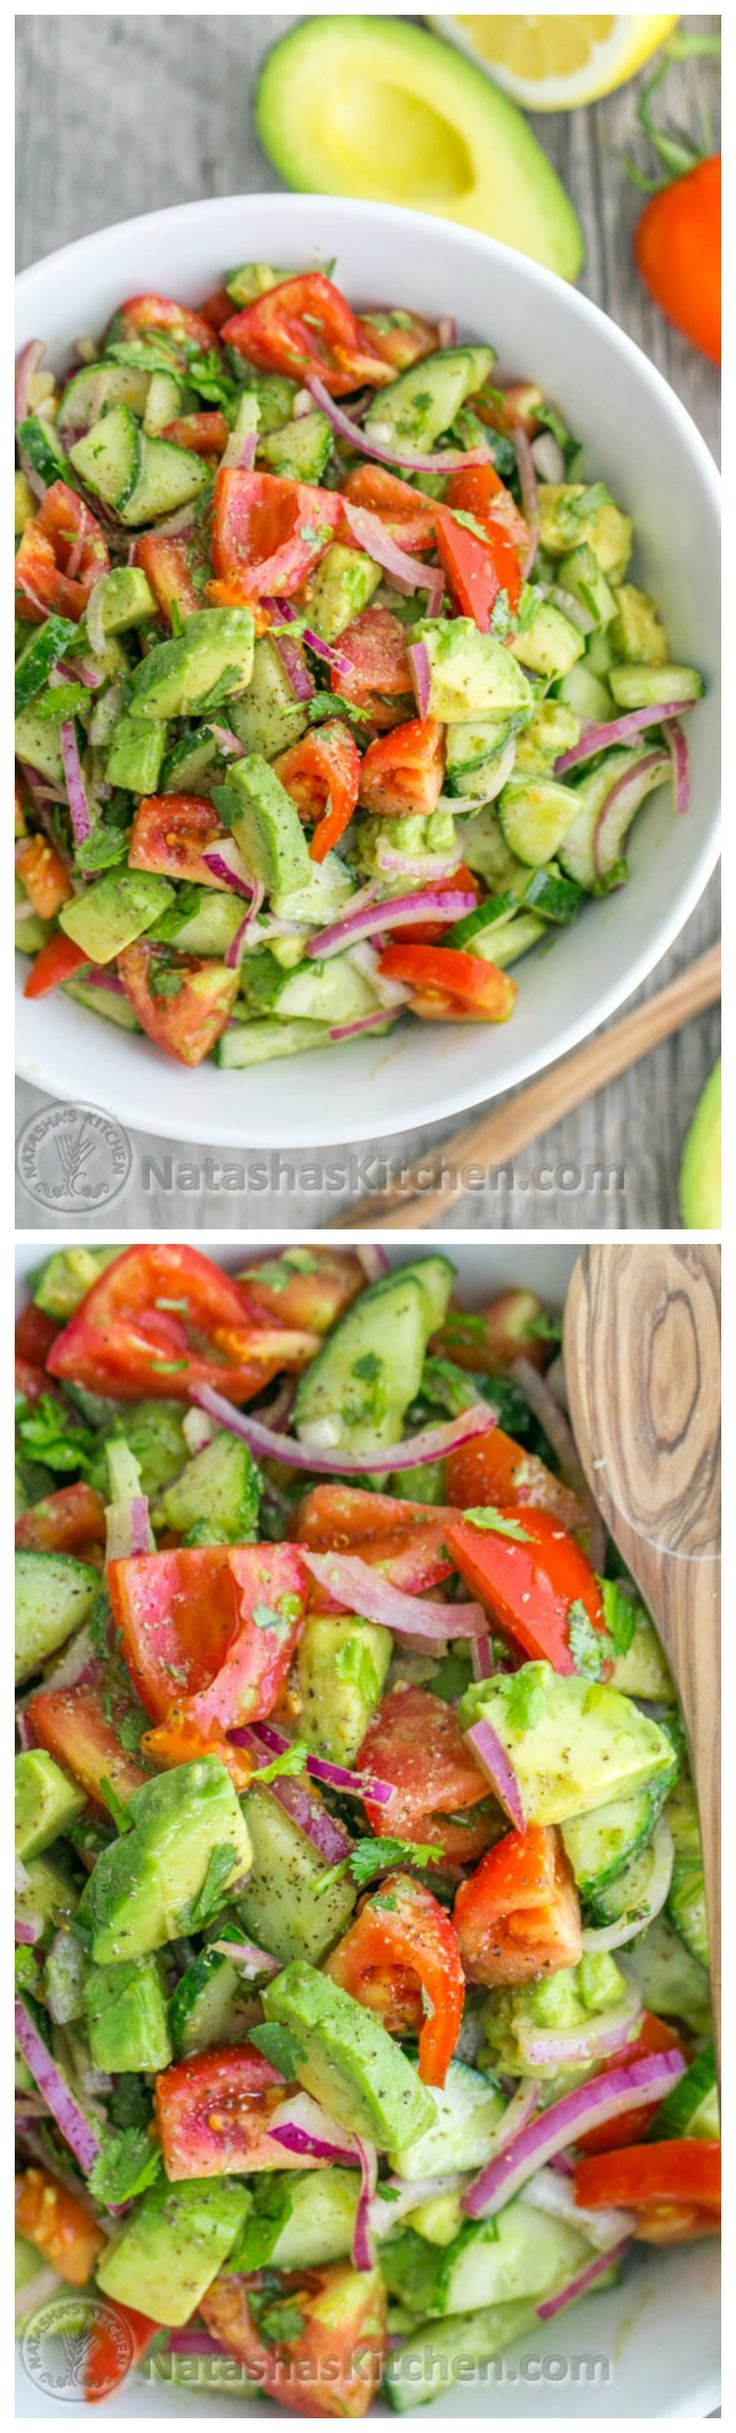 This Cucumber Tomato Avocado Salad - 2 Avocados, 1/4 cup Cilantro, 1 English cucumber, 1 tbsp Lemon juice, 1/2 Red onion, 1 lb Roma tomatoes, 1/8 tsp Black pepper, 1 tsp Sea salt, 2 tbsp Olive/sunflower oil